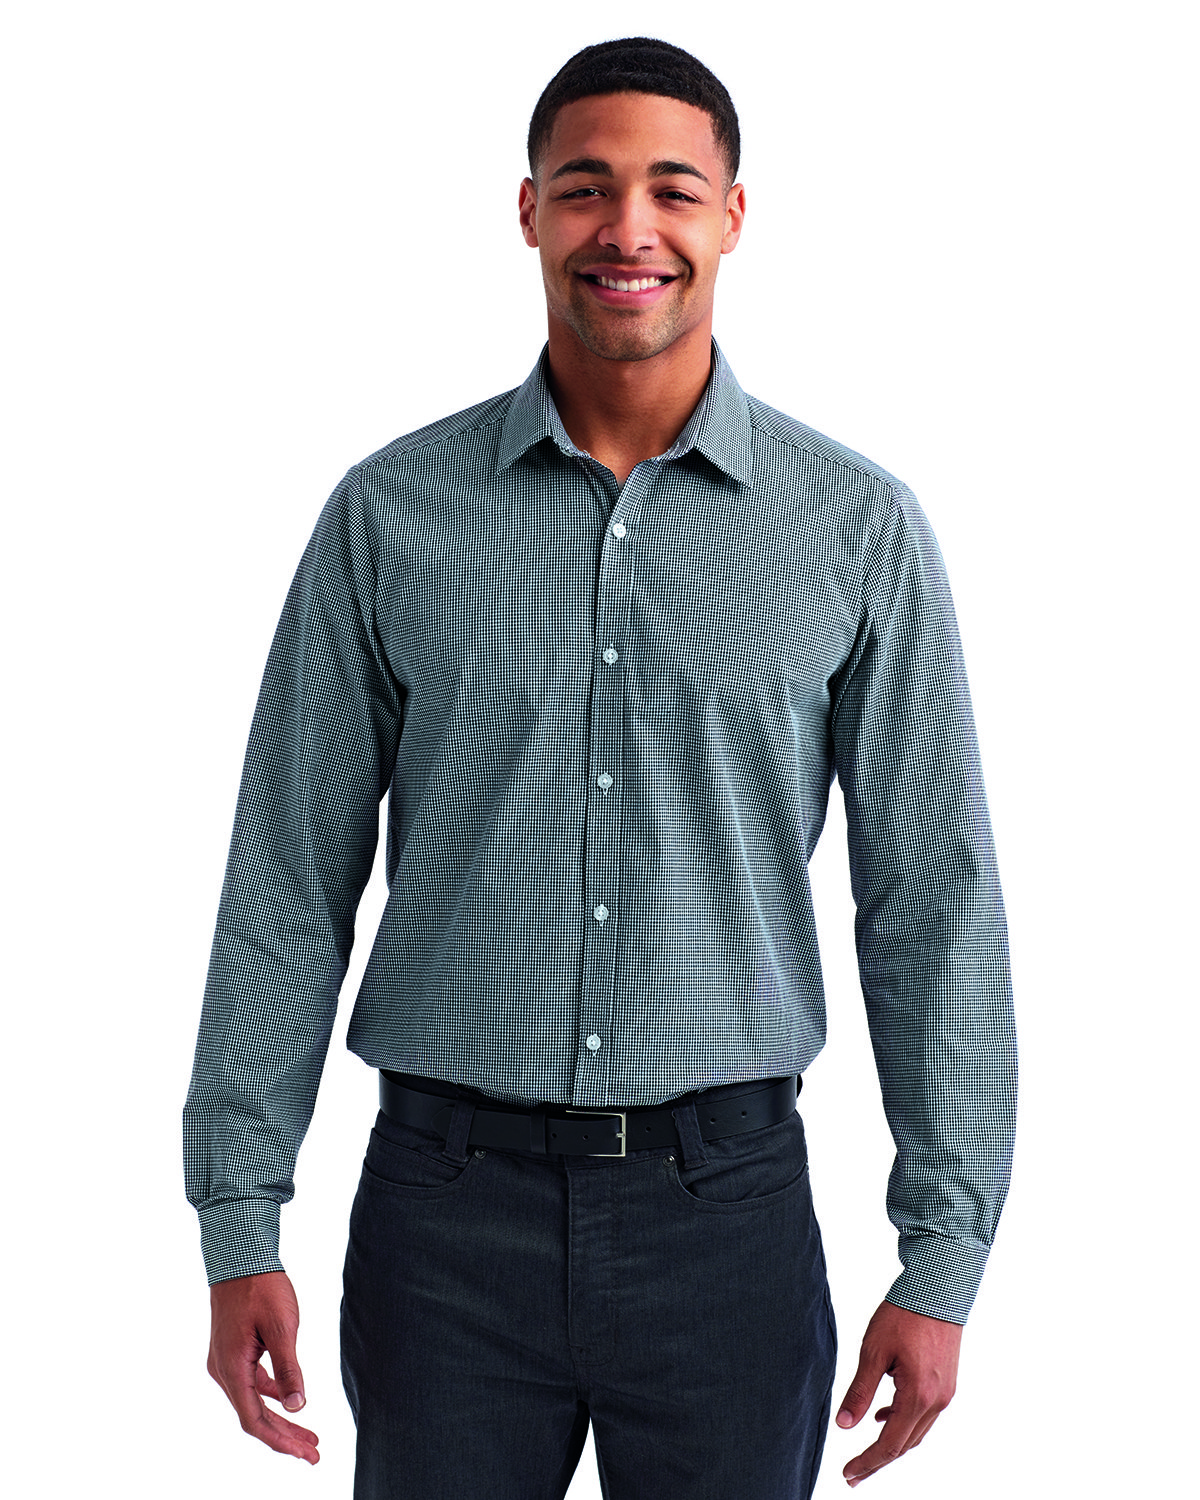 Artisan Collection by Reprime Men's Microcheck Gingham Long-Sleeve Cotton Shirt BLACK/ WHITE